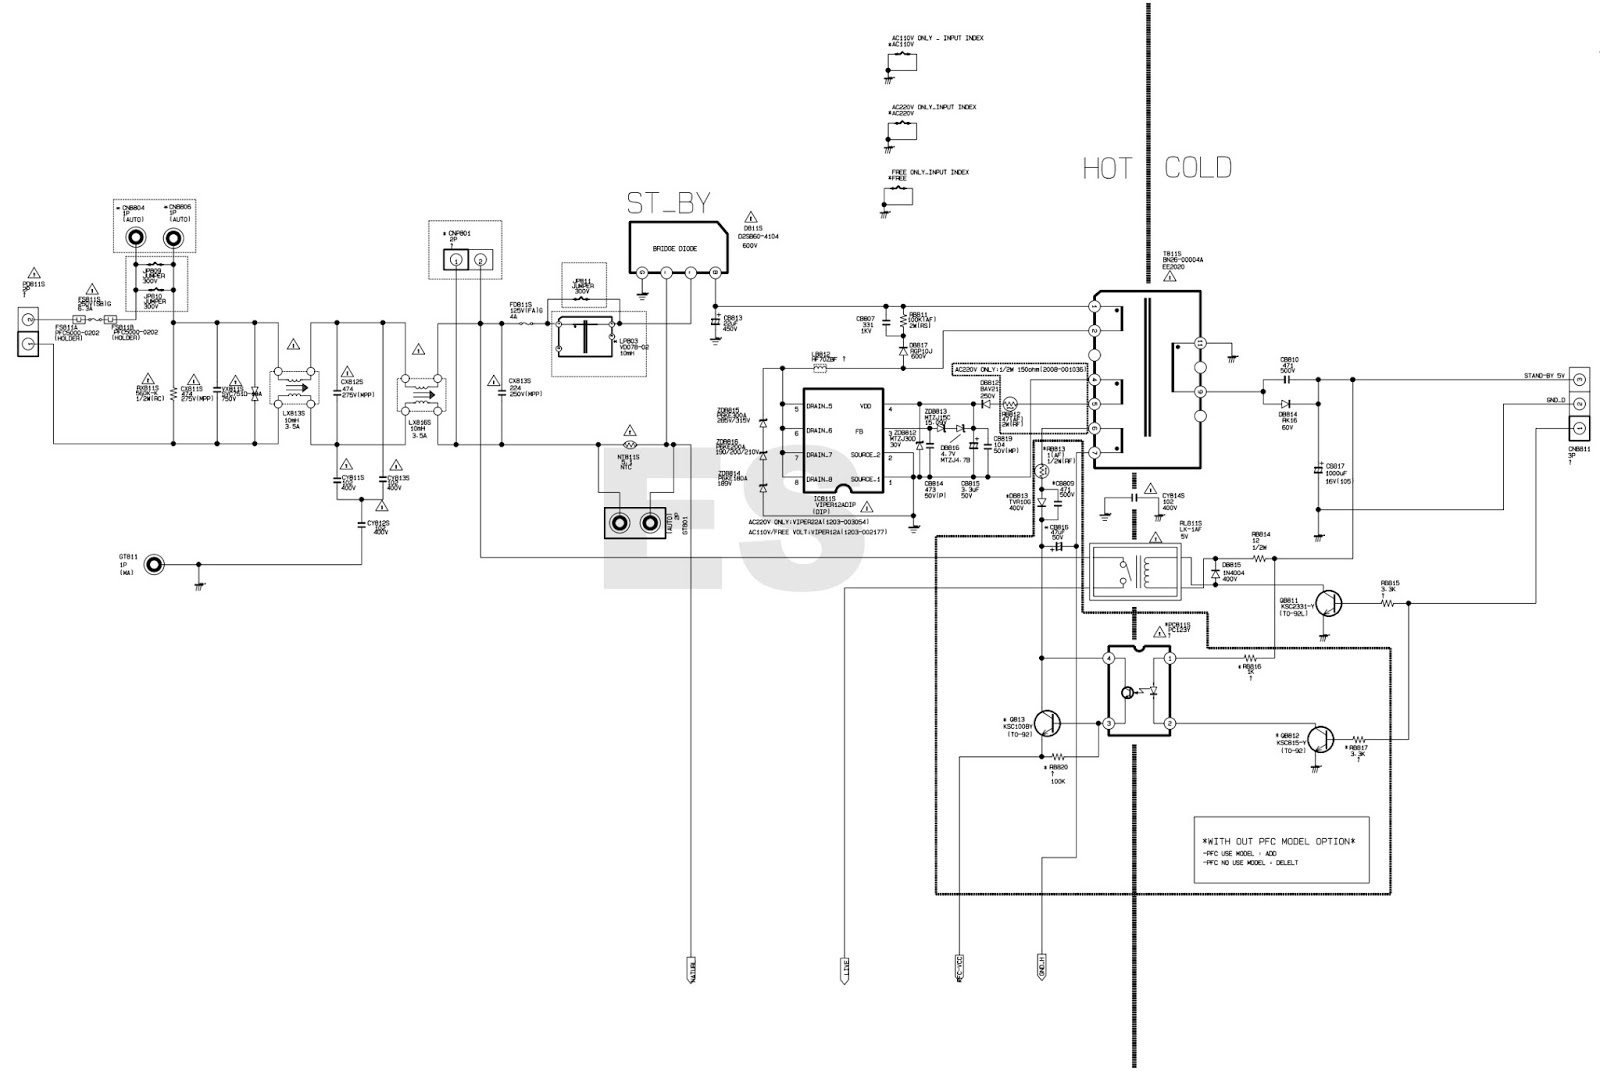 samsung power supply schematic diagrams data wiring diagram schemafirmware download samsung bn44 00622b power supply board [ 1600 x 1085 Pixel ]